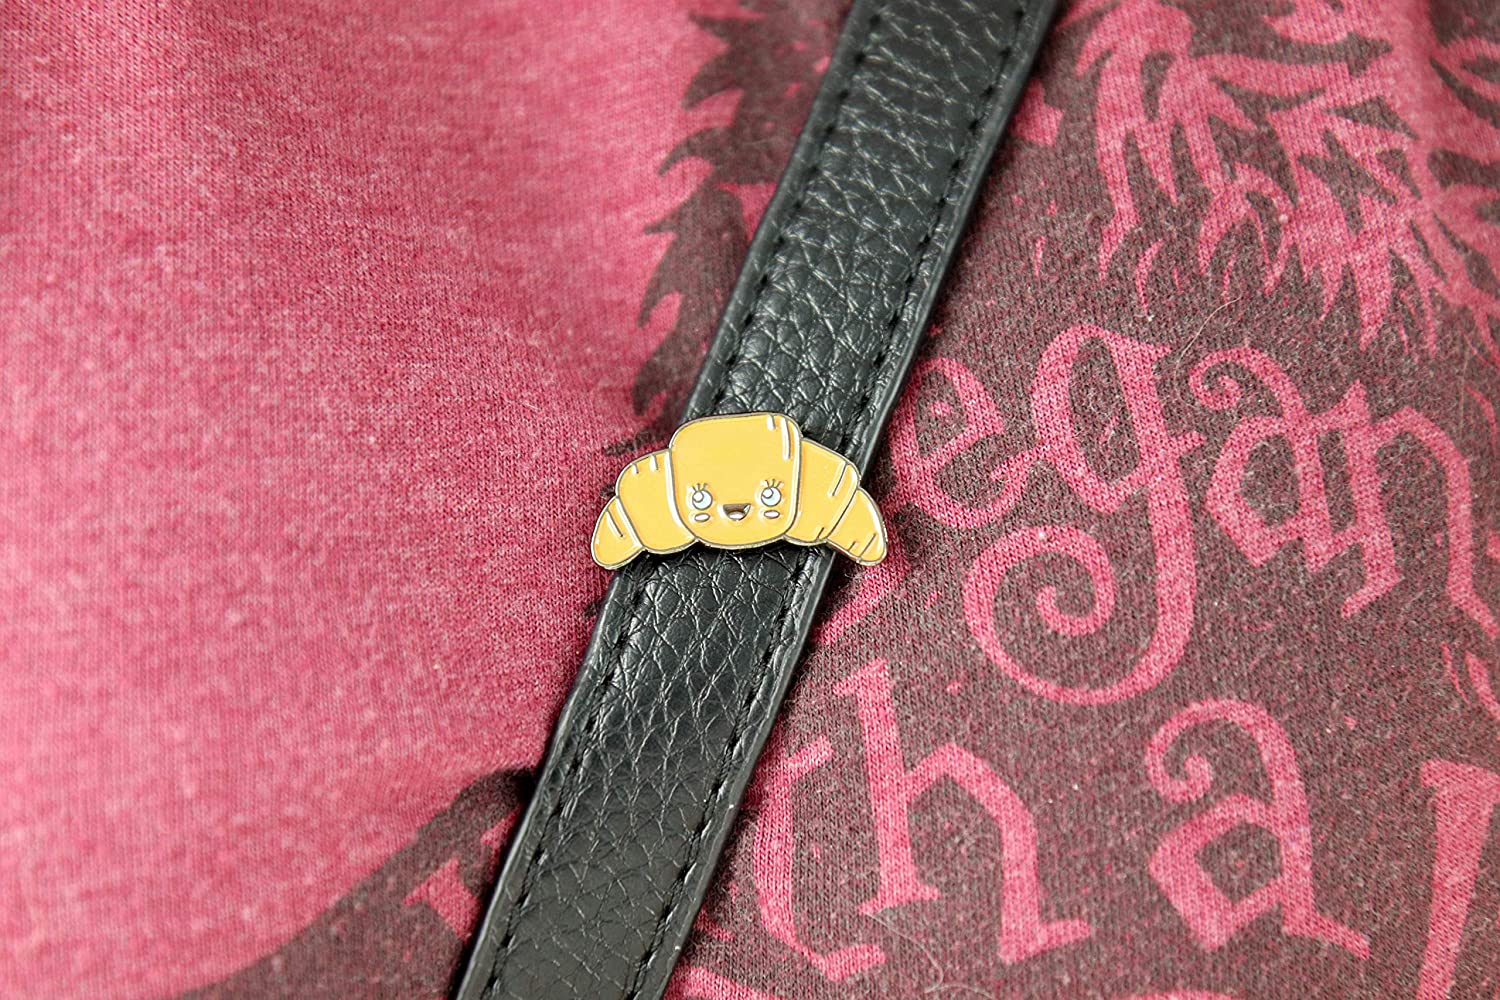 Lapel Croissant Enamel Pin or Hat Oh Hello Co Jacket Cute and Perfect Accessory for Backpack